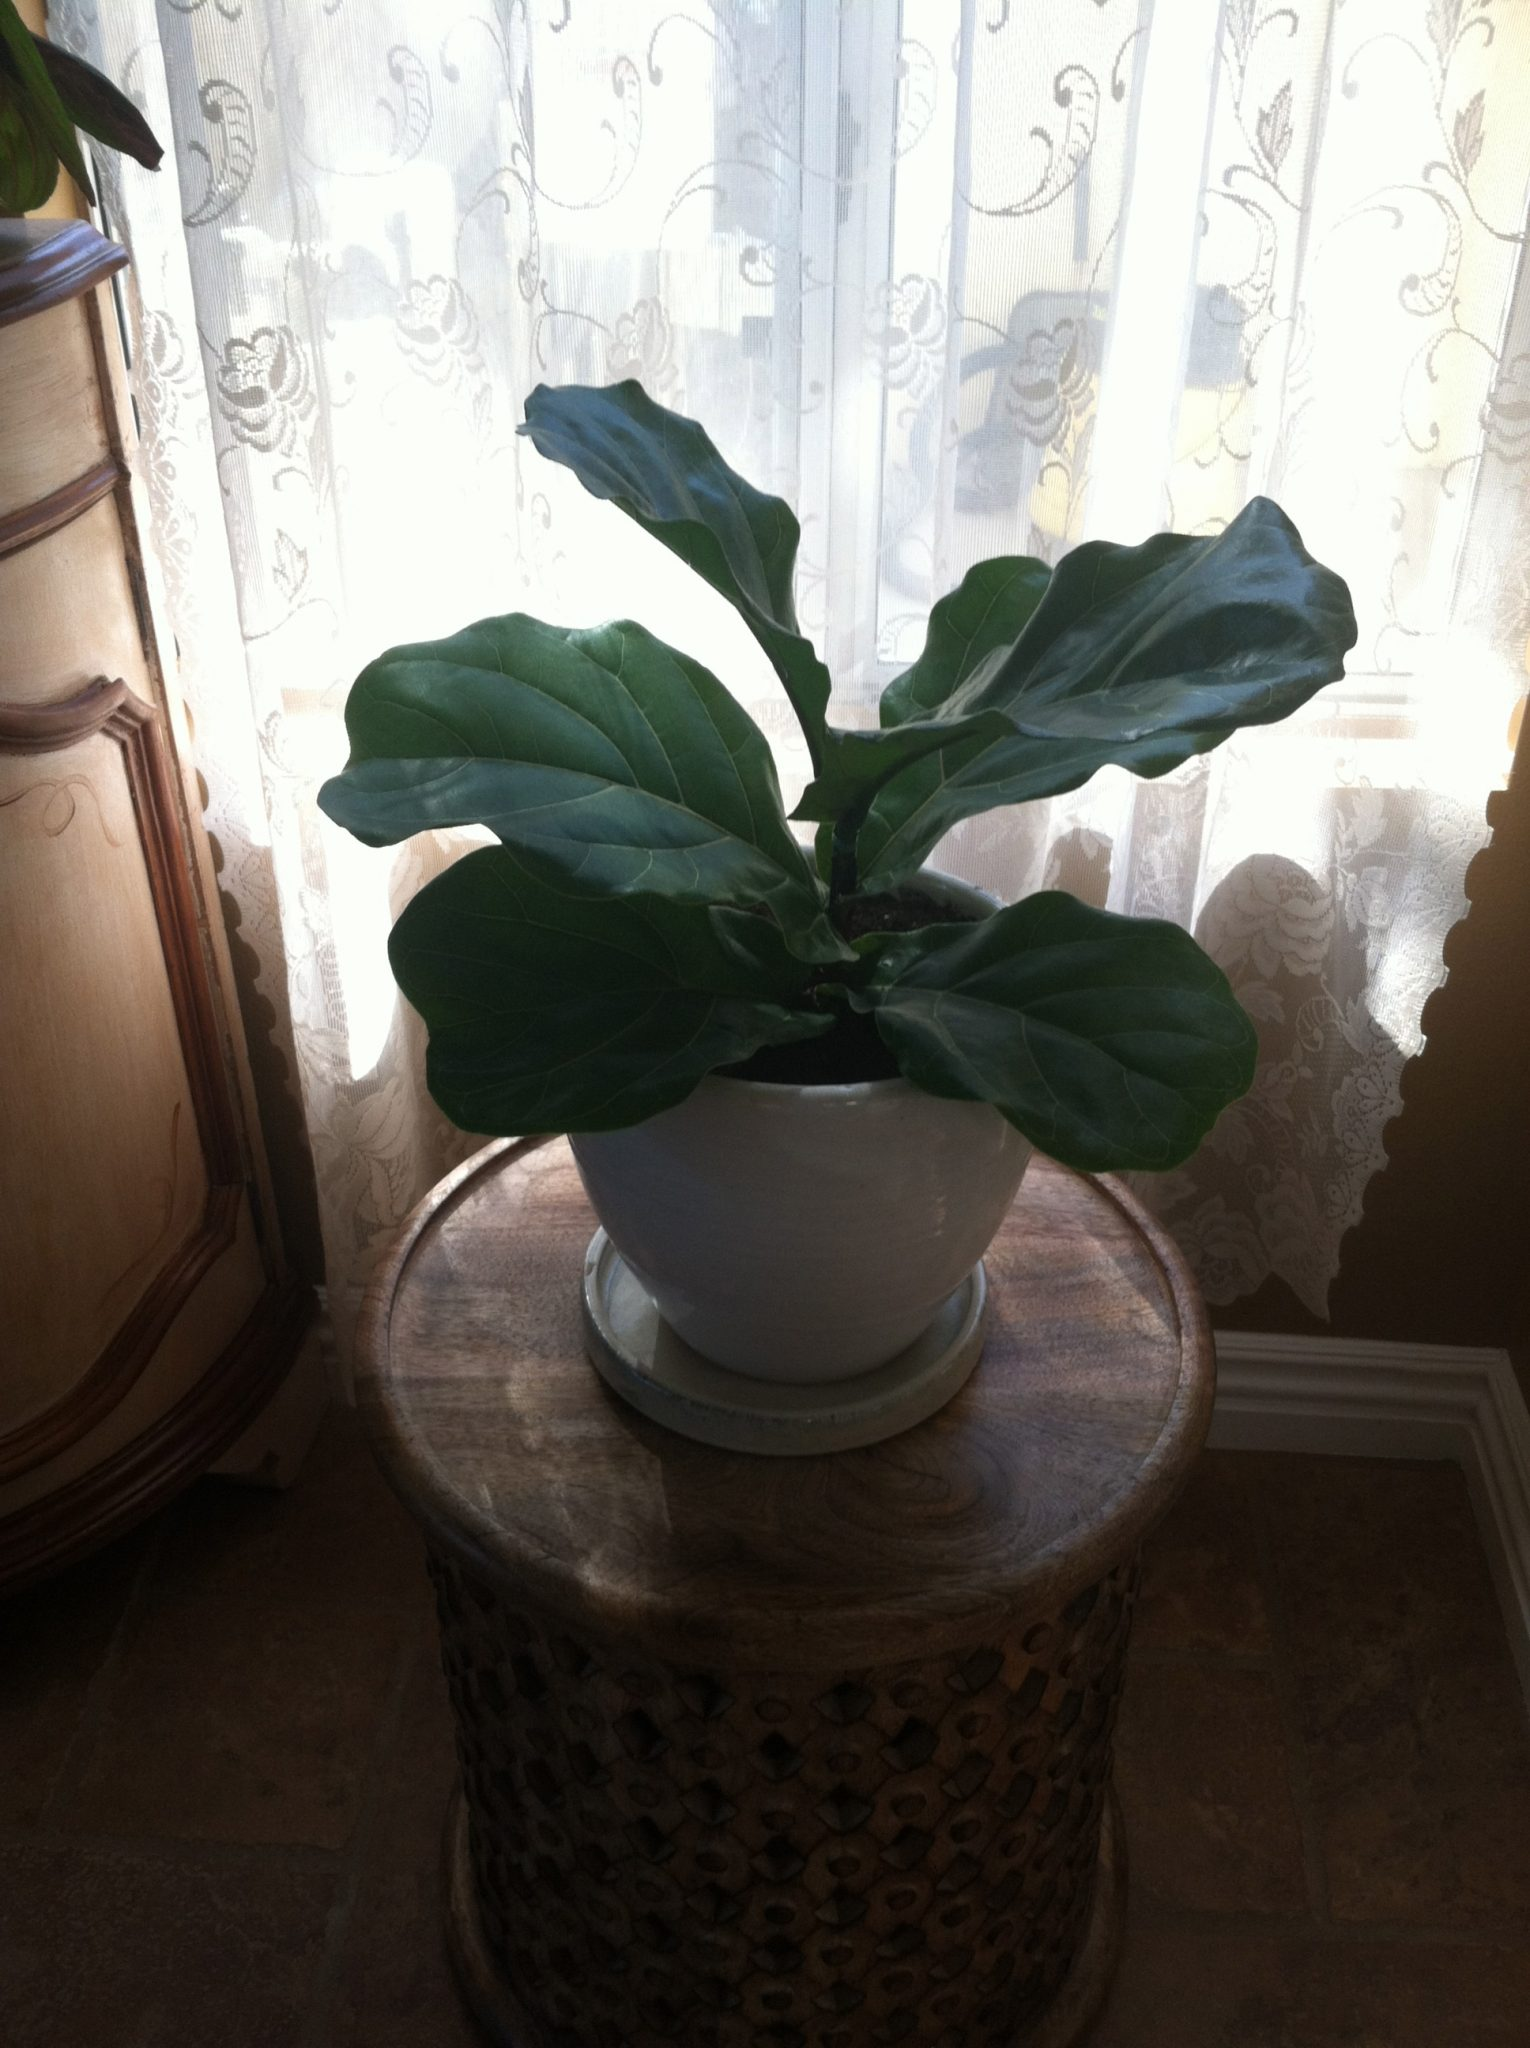 Fiddle-Dee-Dee a Fiddle Leaf Fig for Me! (House Plants, Part 2)